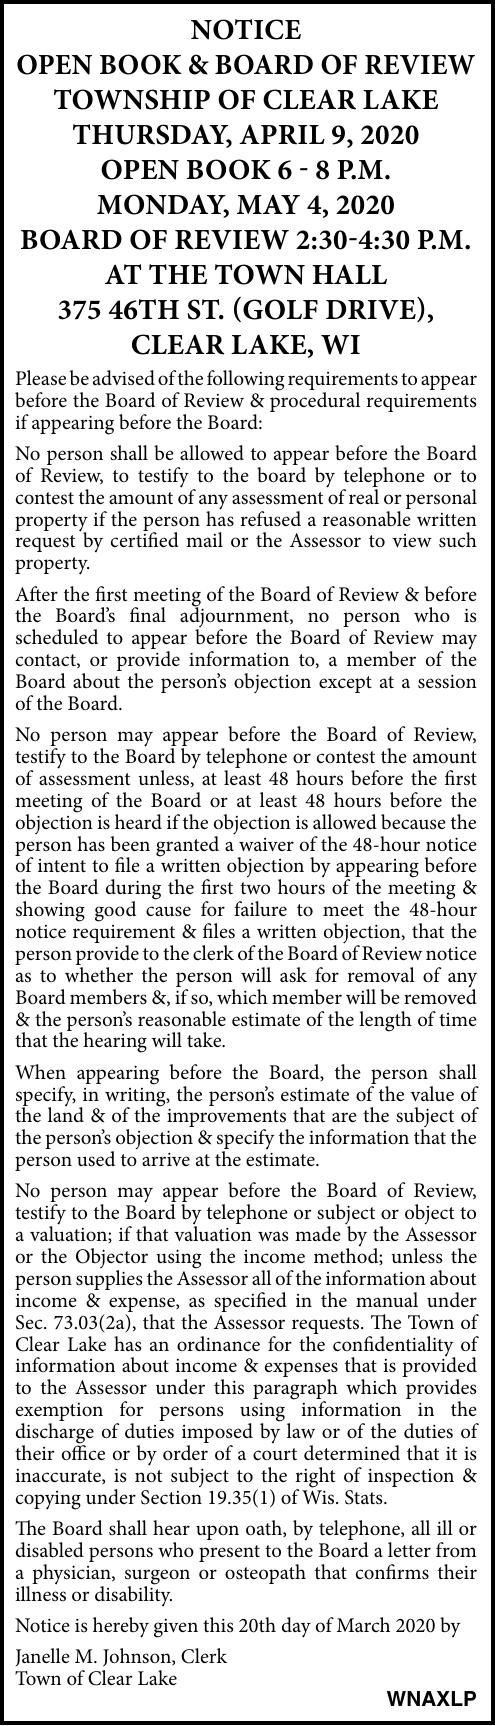 Town of Clear Lake - Open Book/Board of Review